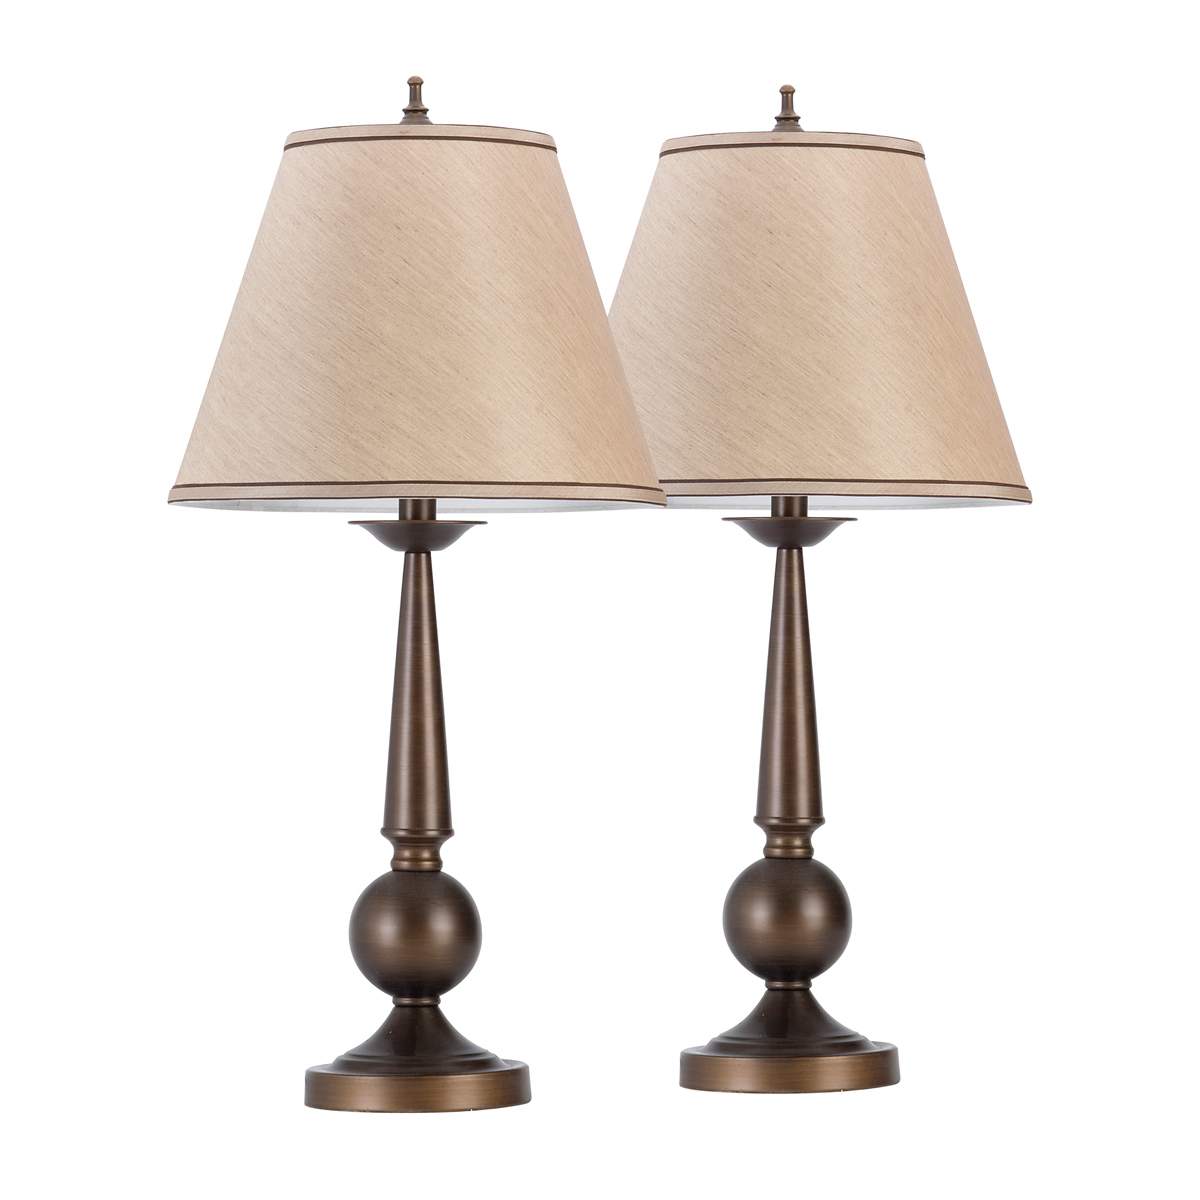 "Globe Electric 60 Watt Set of Two 27"" Bronze & Beige Table Lamps by Globe Electric"